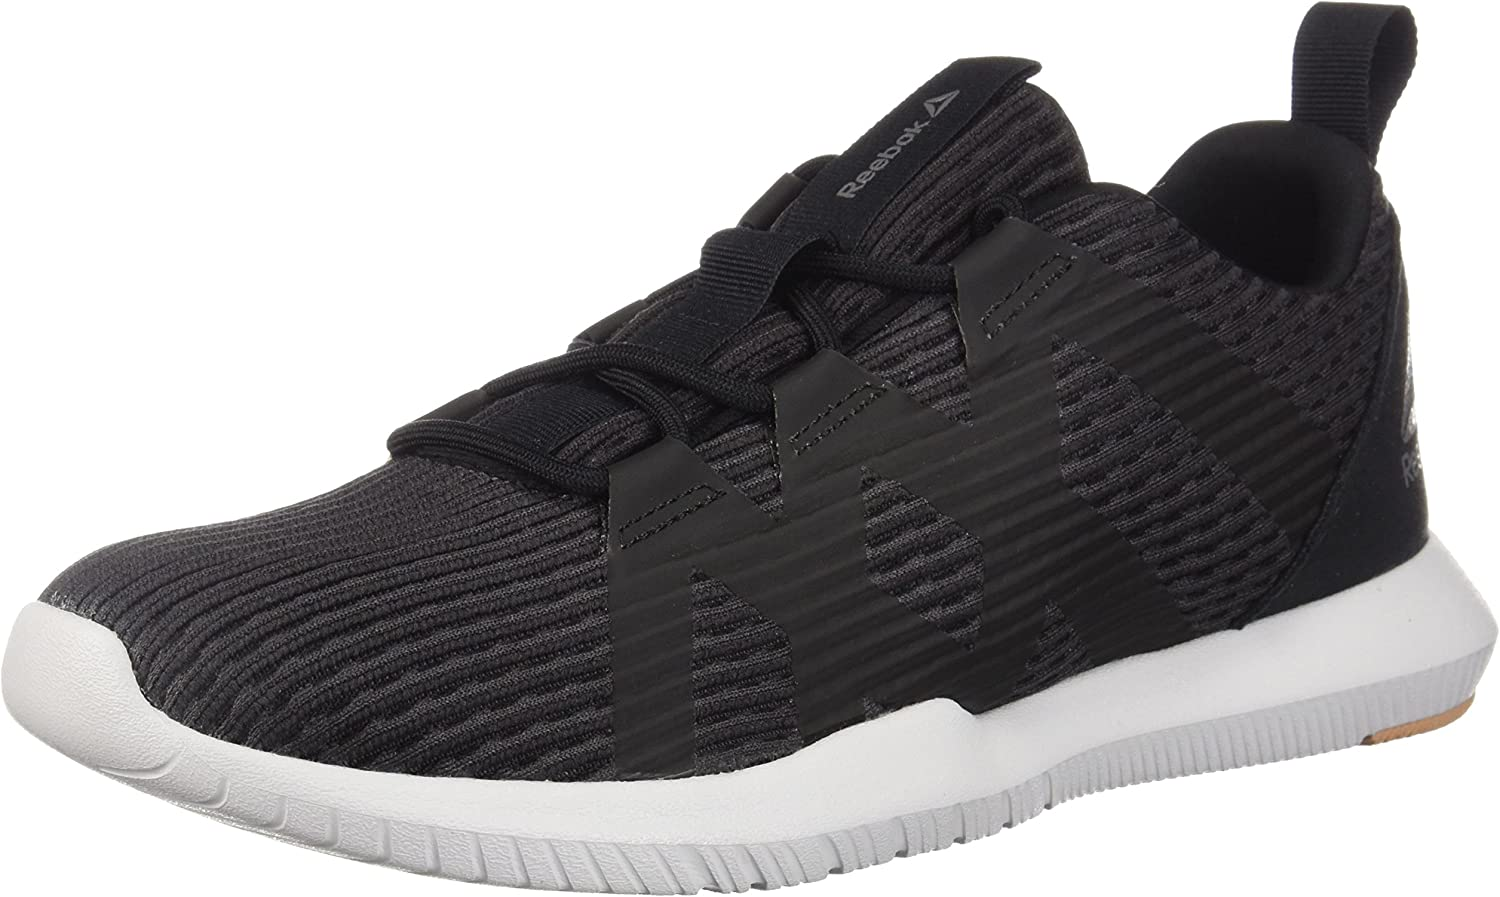 Reebok Women's Reago Pulse Training shoes